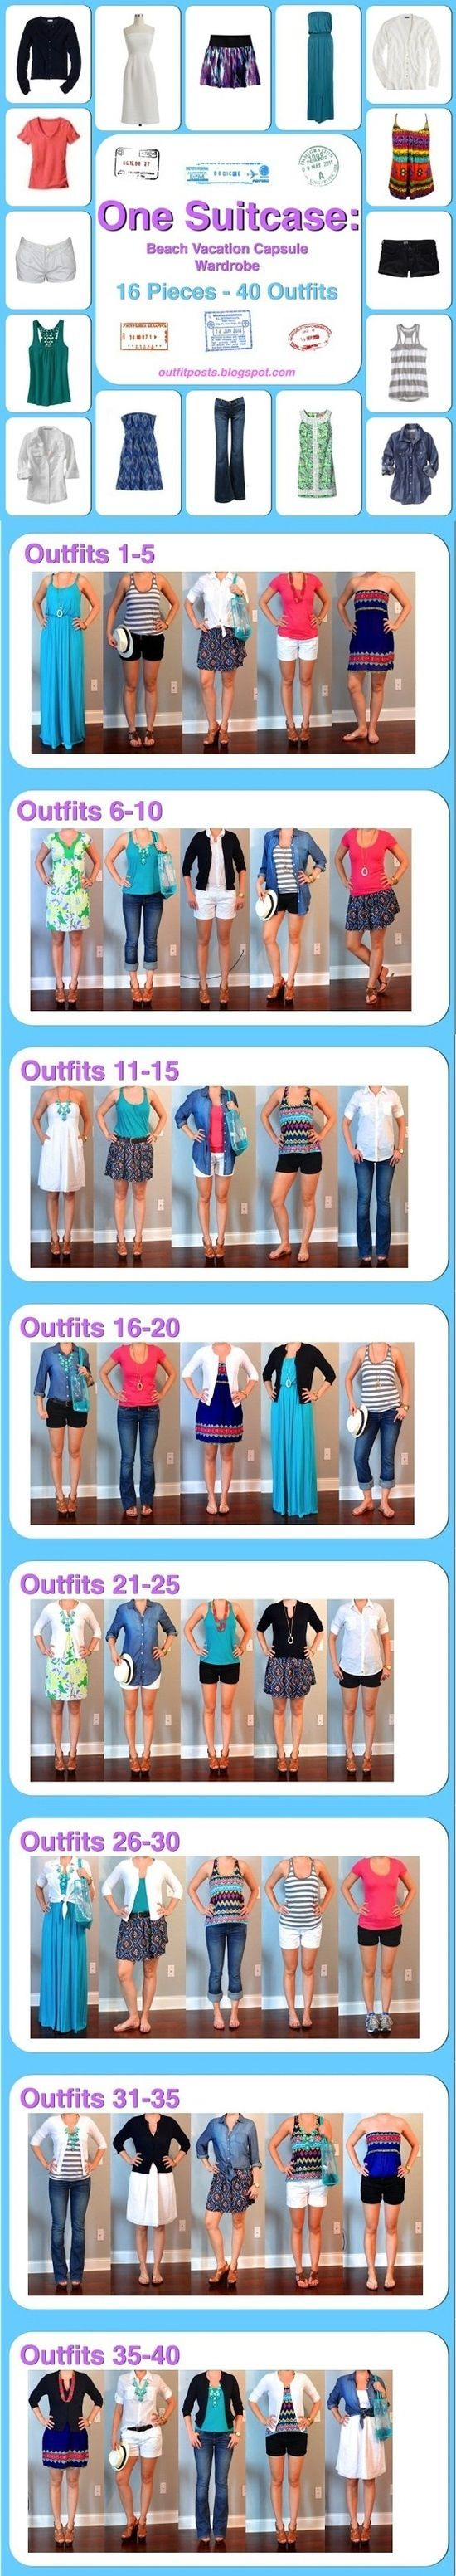 Summer outfits that fit in a suitcase   One suitcase ...